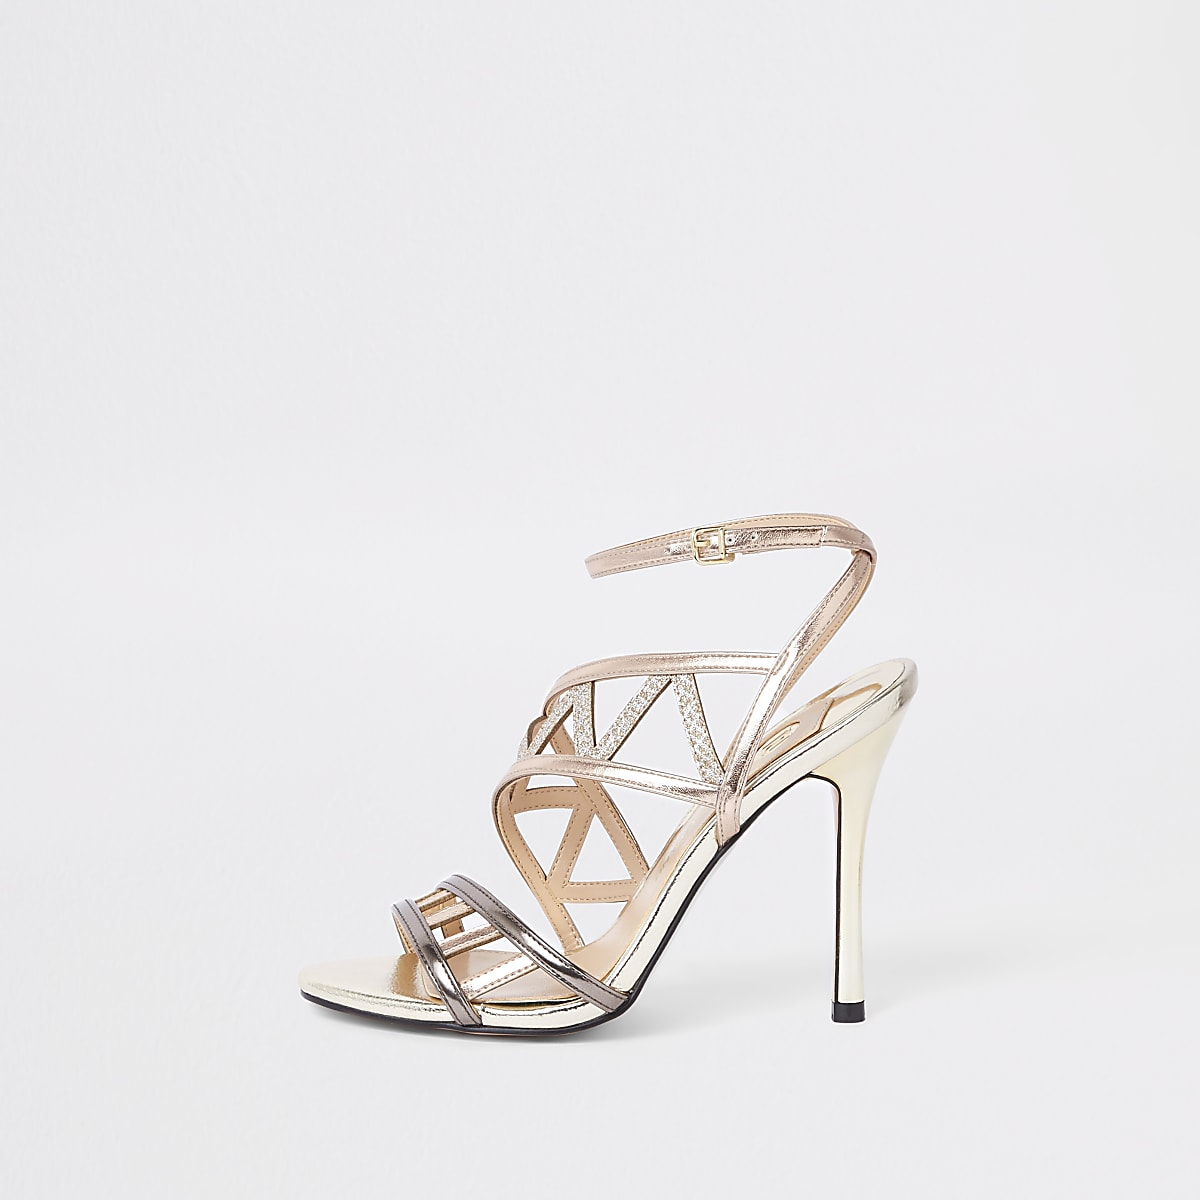 Rose gold tone strappy sandals